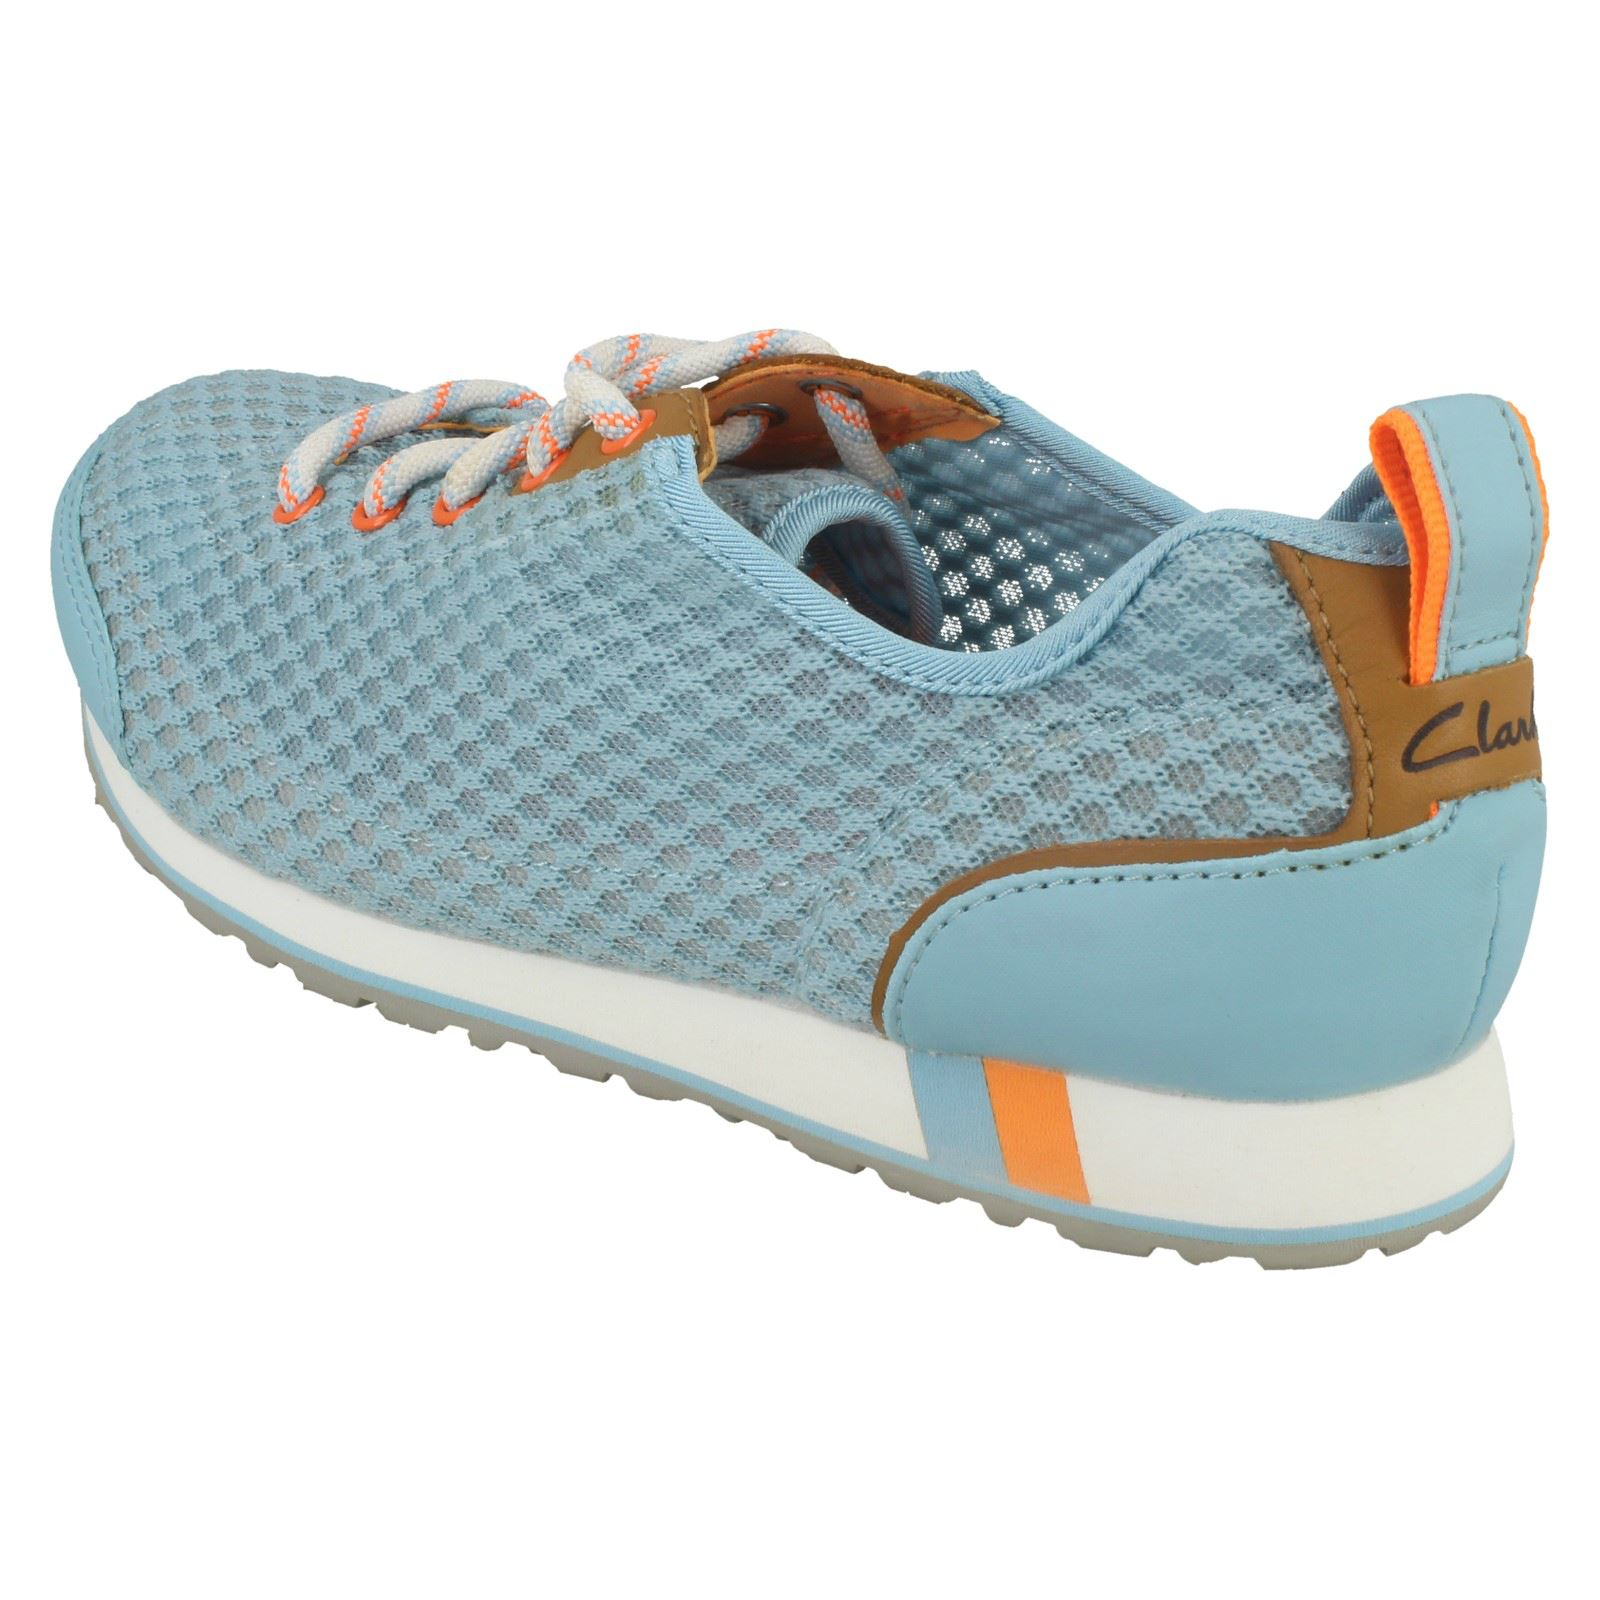 blue Sky Trainers Wear Clarks Blue 'incast Ladies Lace' Active qtYUUS8